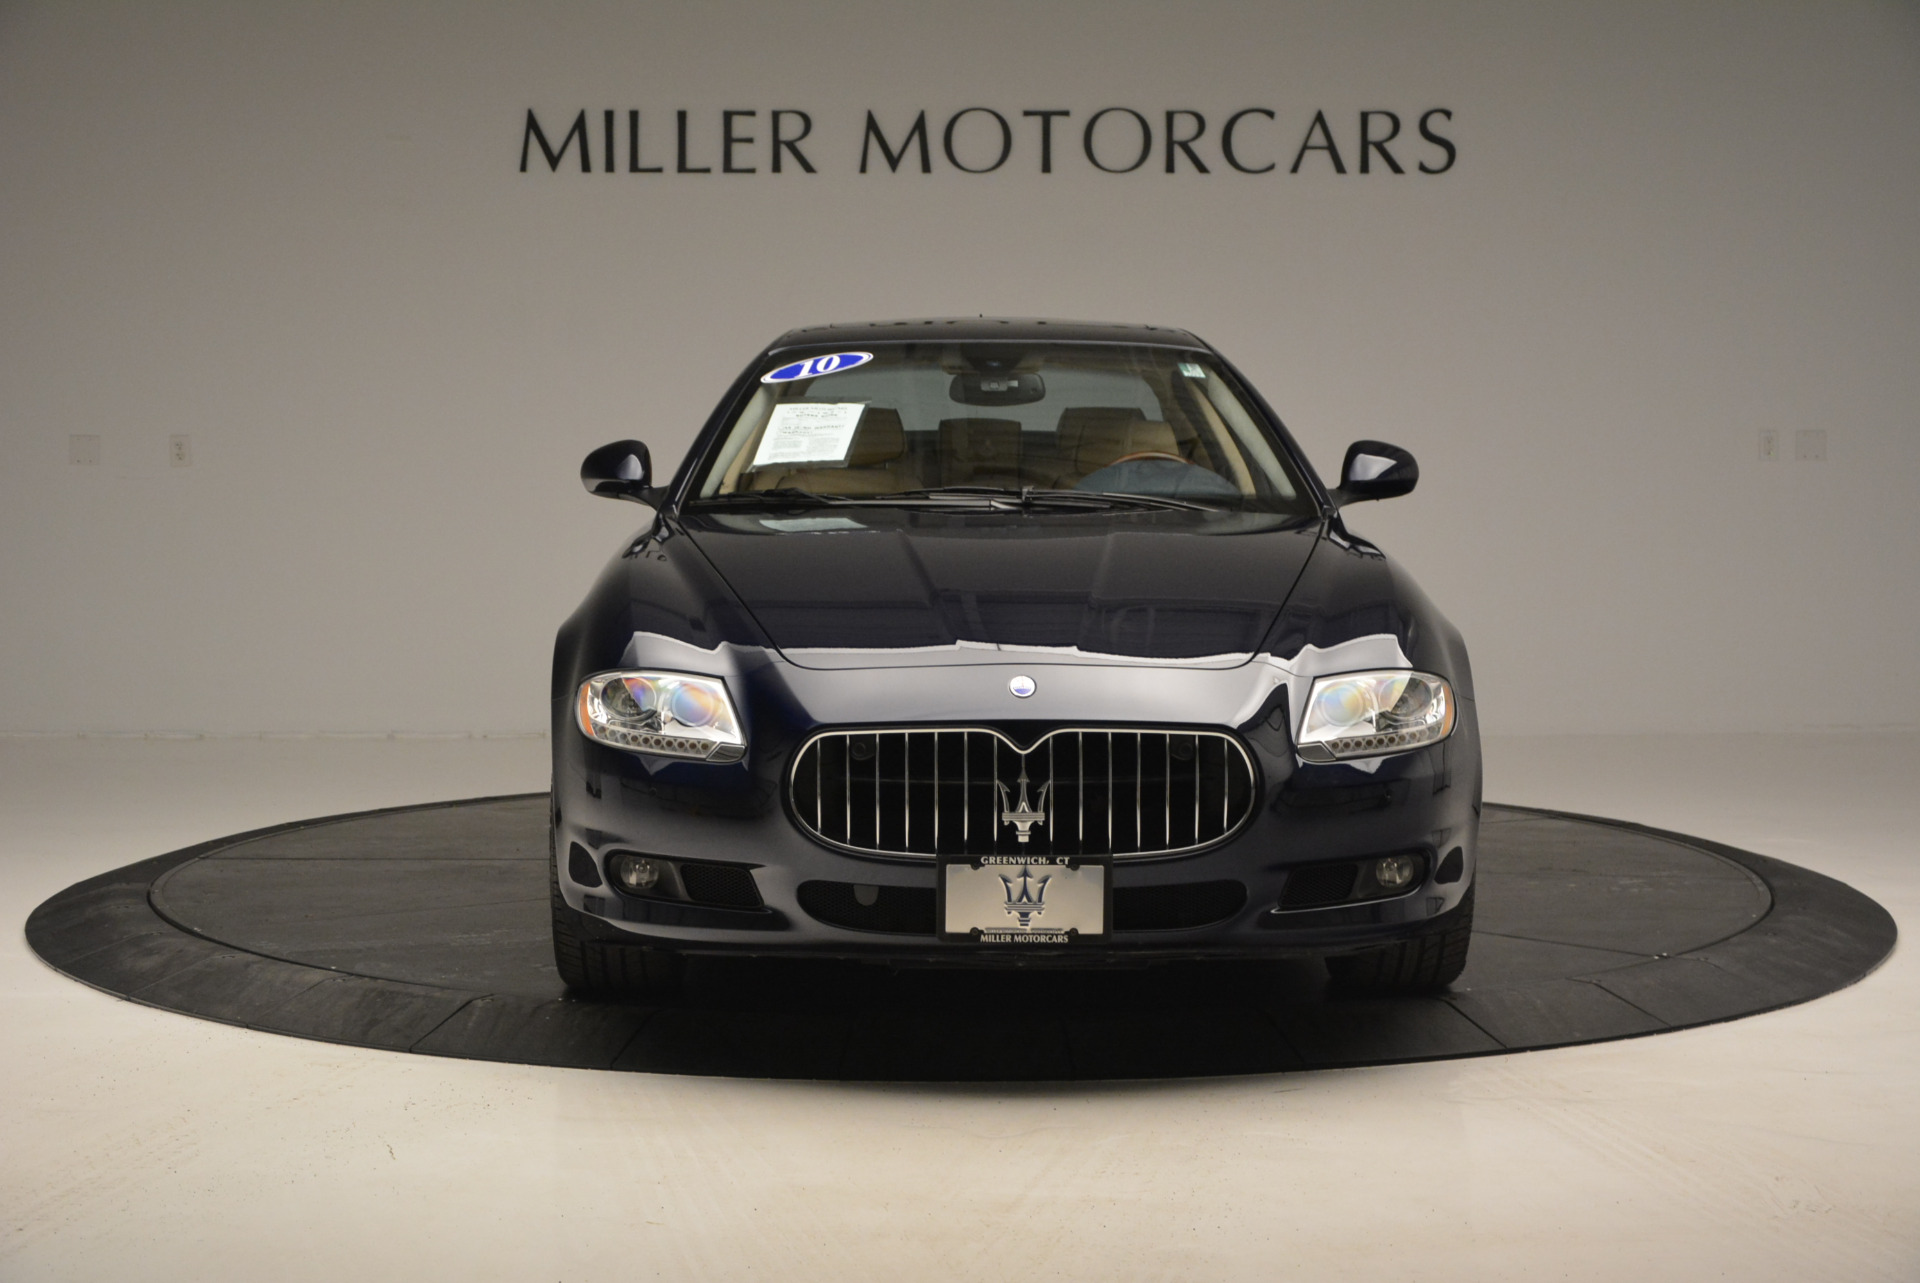 Used 2010 Maserati Quattroporte S For Sale In Westport, CT 795_p12